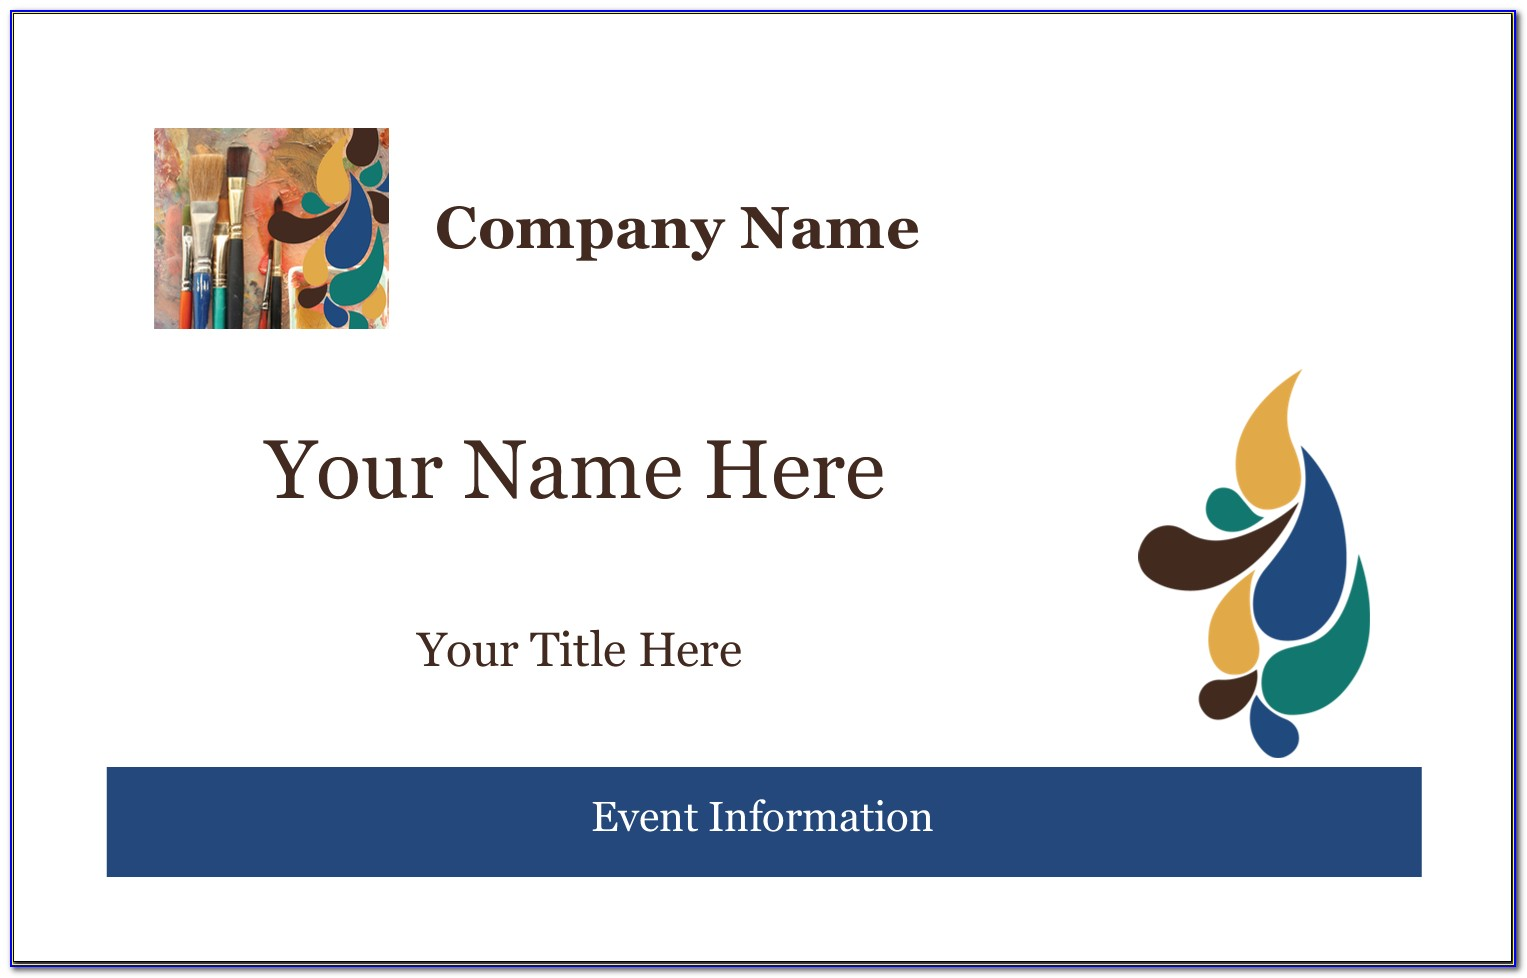 Avery Name Tag Template 5392